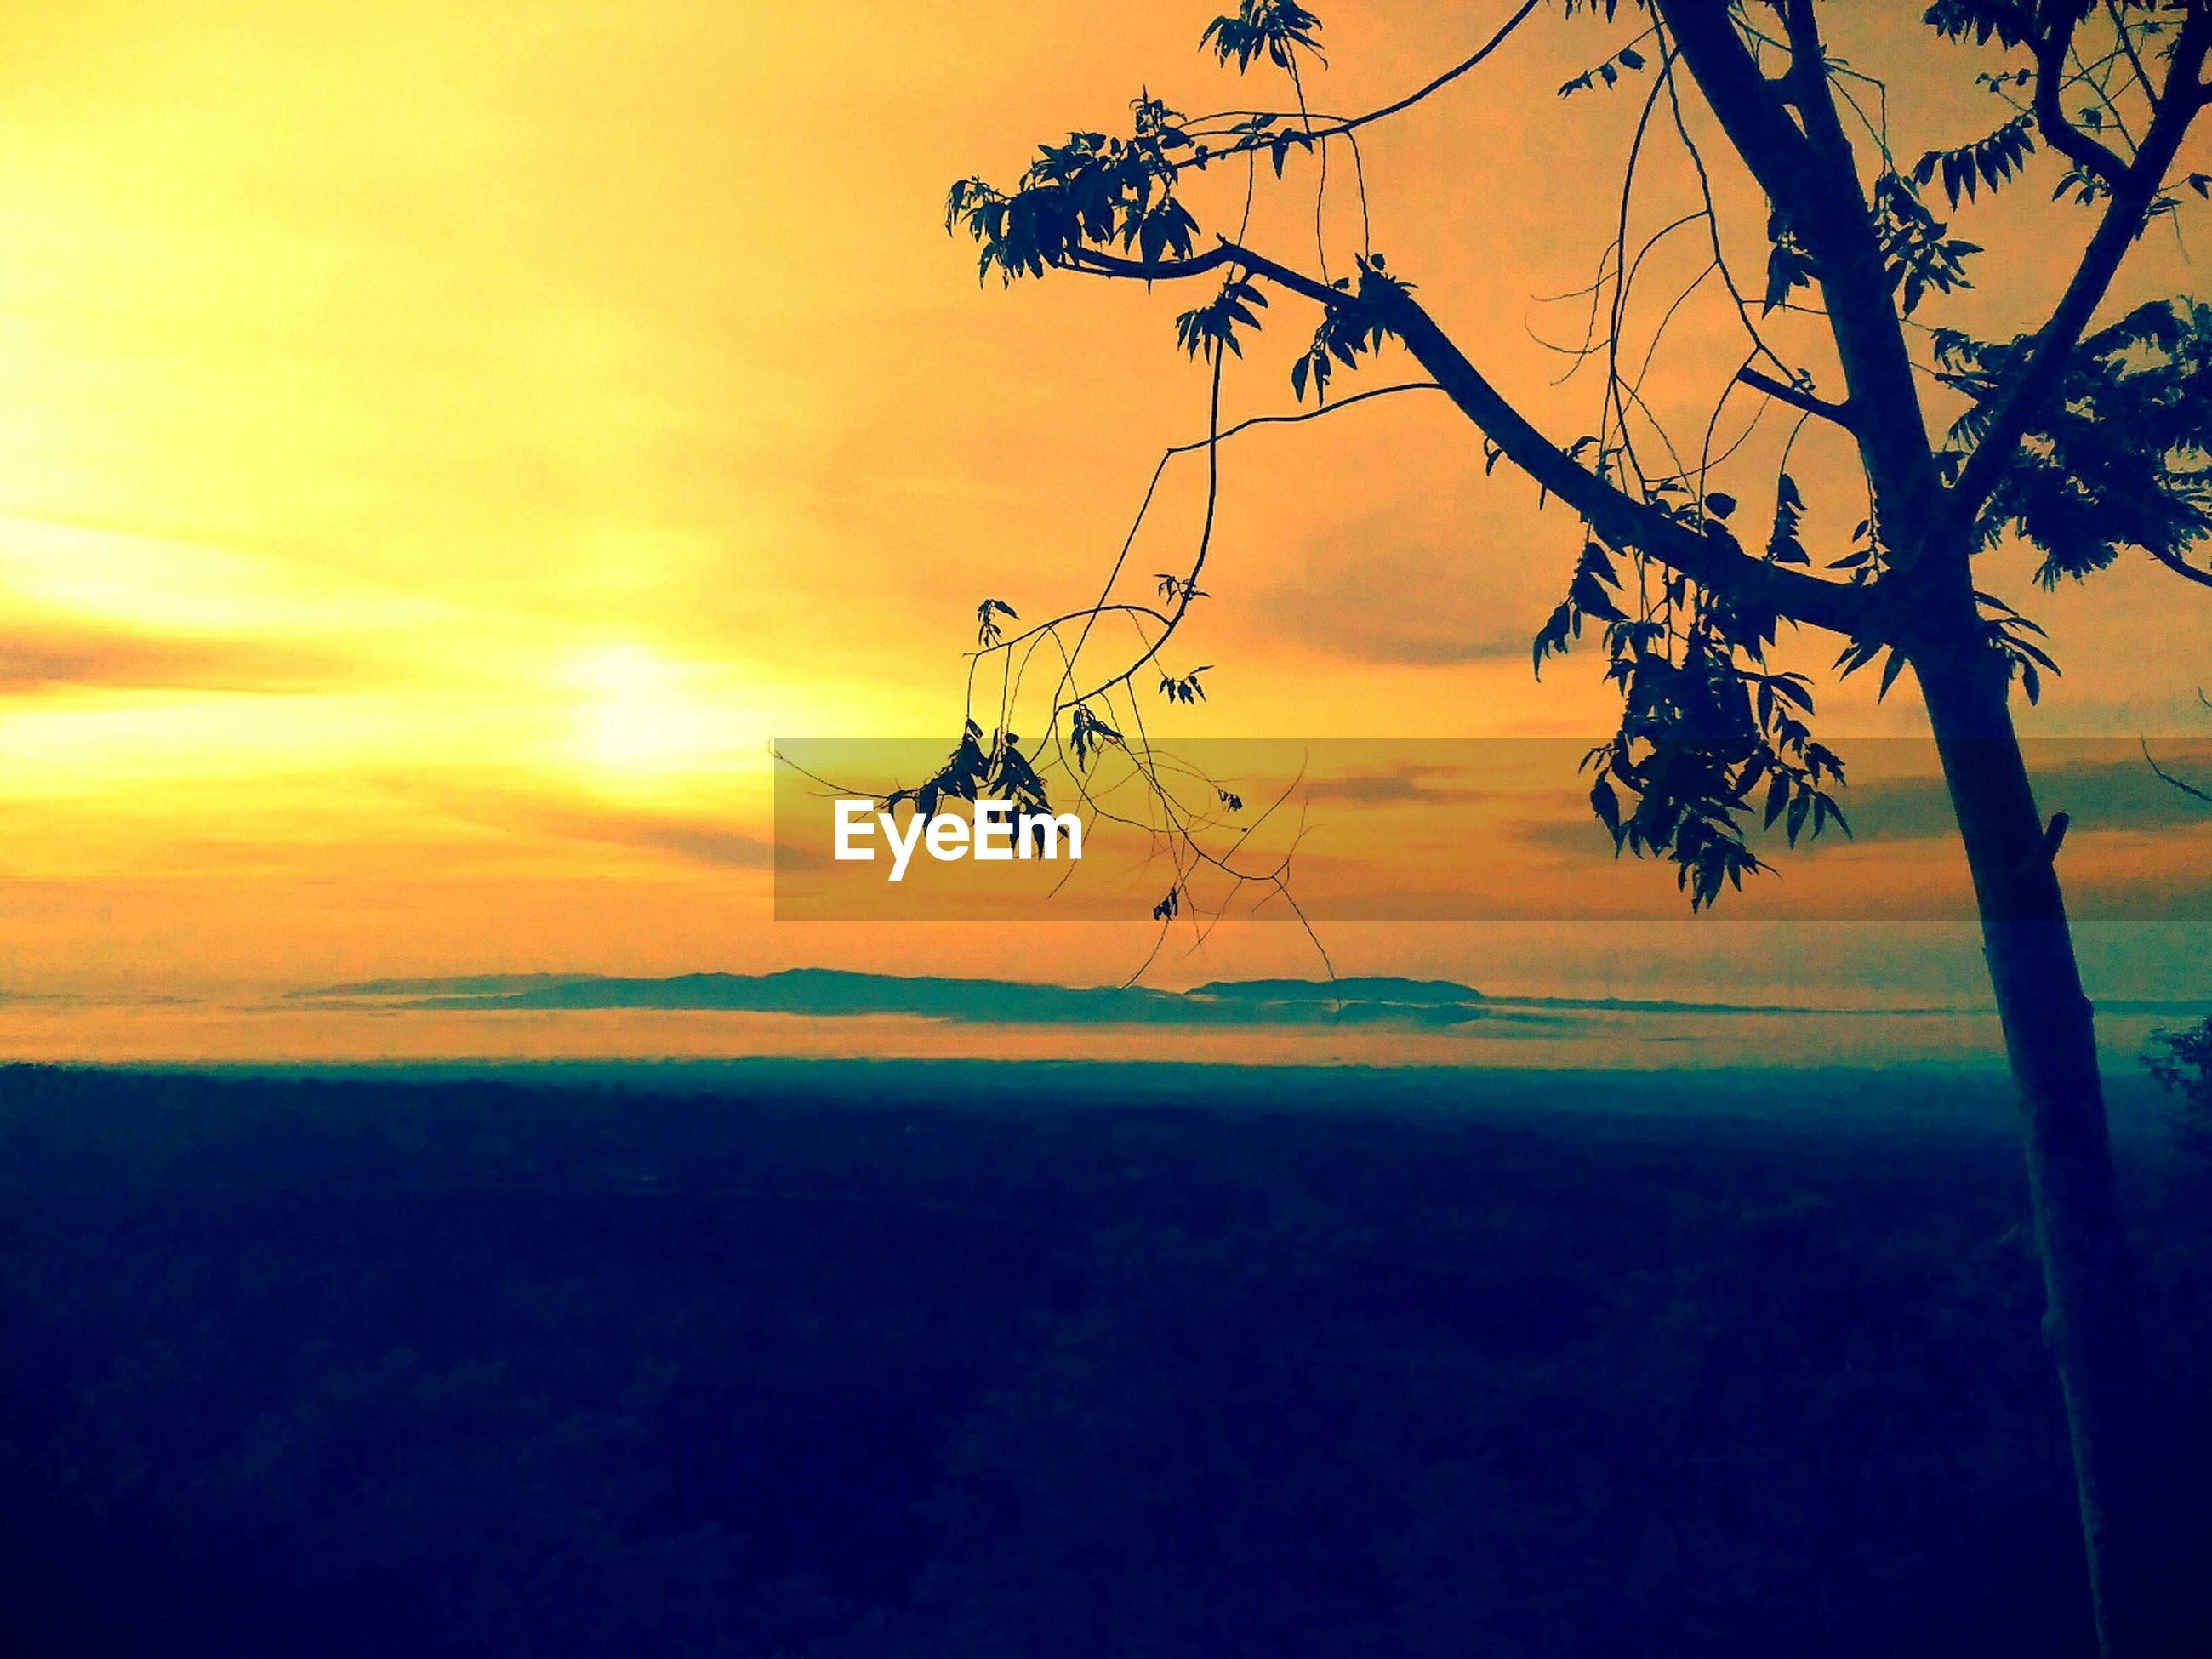 sunset, orange color, silhouette, scenics, tranquility, tranquil scene, beauty in nature, sun, sky, nature, idyllic, tree, branch, landscape, horizon over water, sunlight, outdoors, no people, growth, majestic